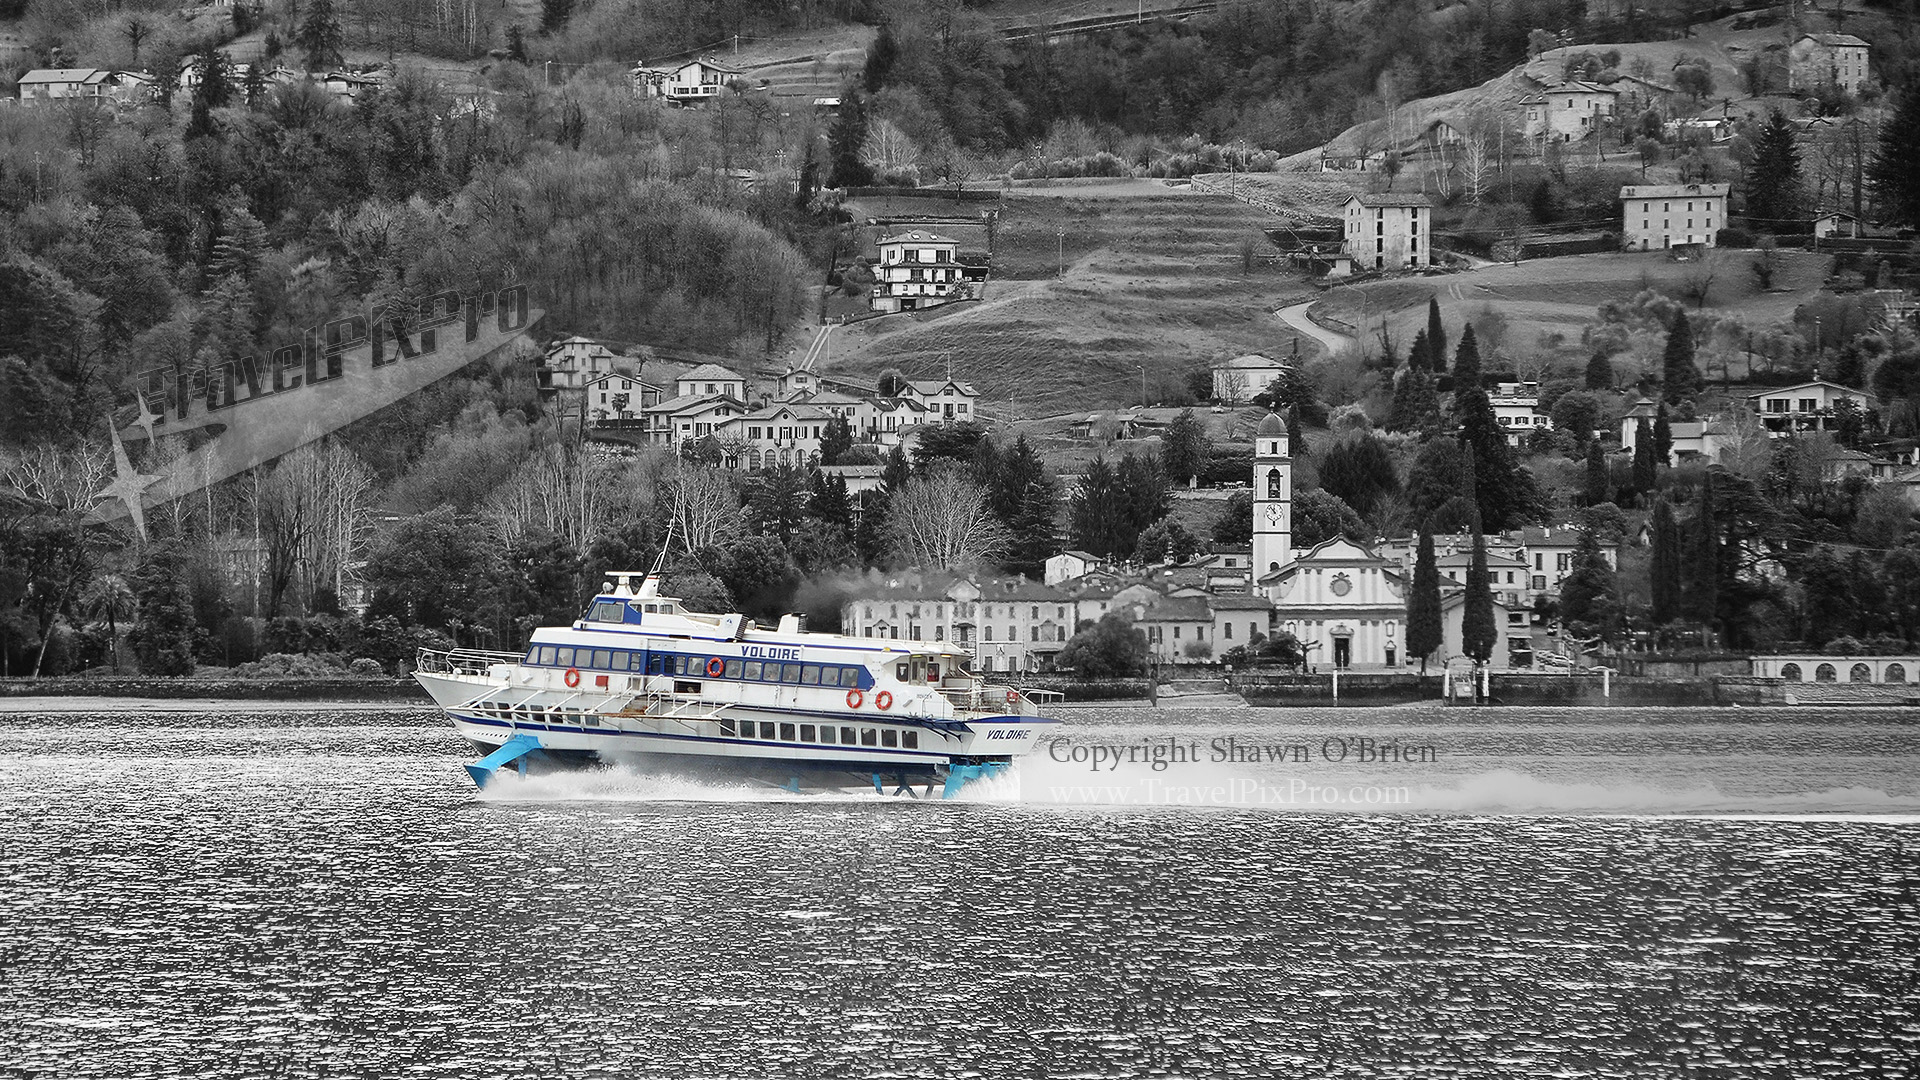 Lake Como Hydrofoil Color Splash